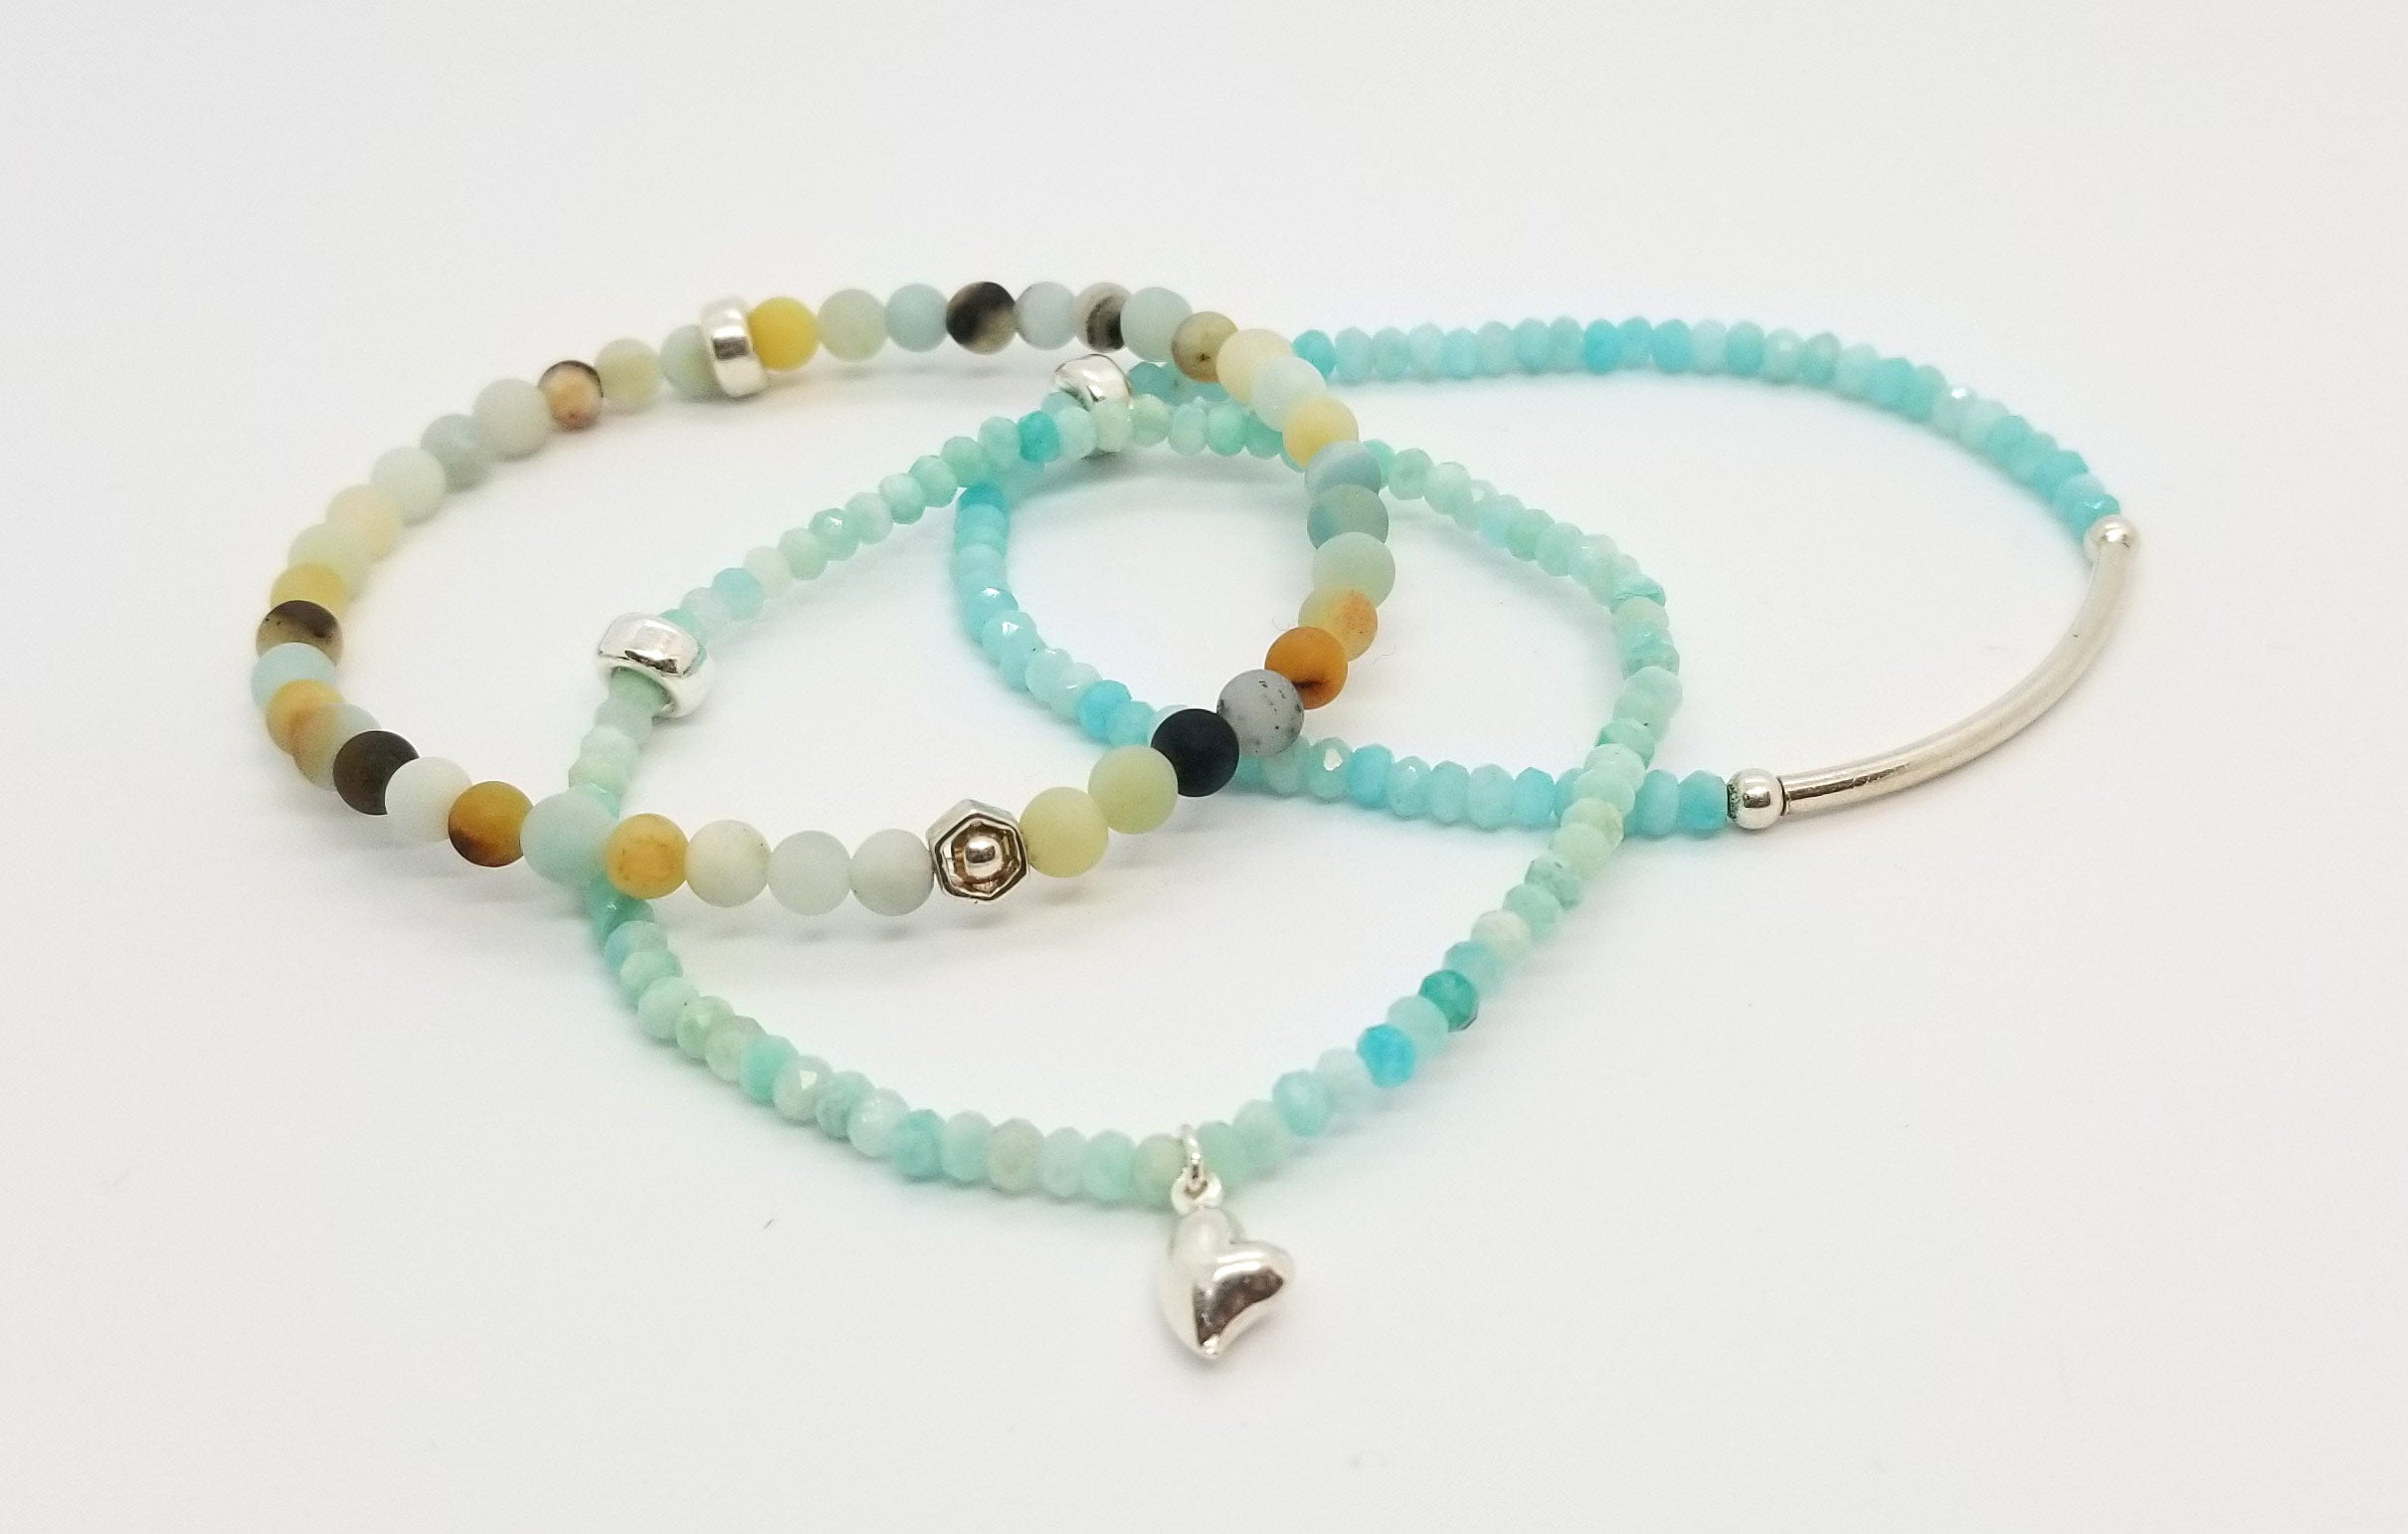 SOLD OUT - Amazonite Silver Bracelet 3 Stack SOLD OUT